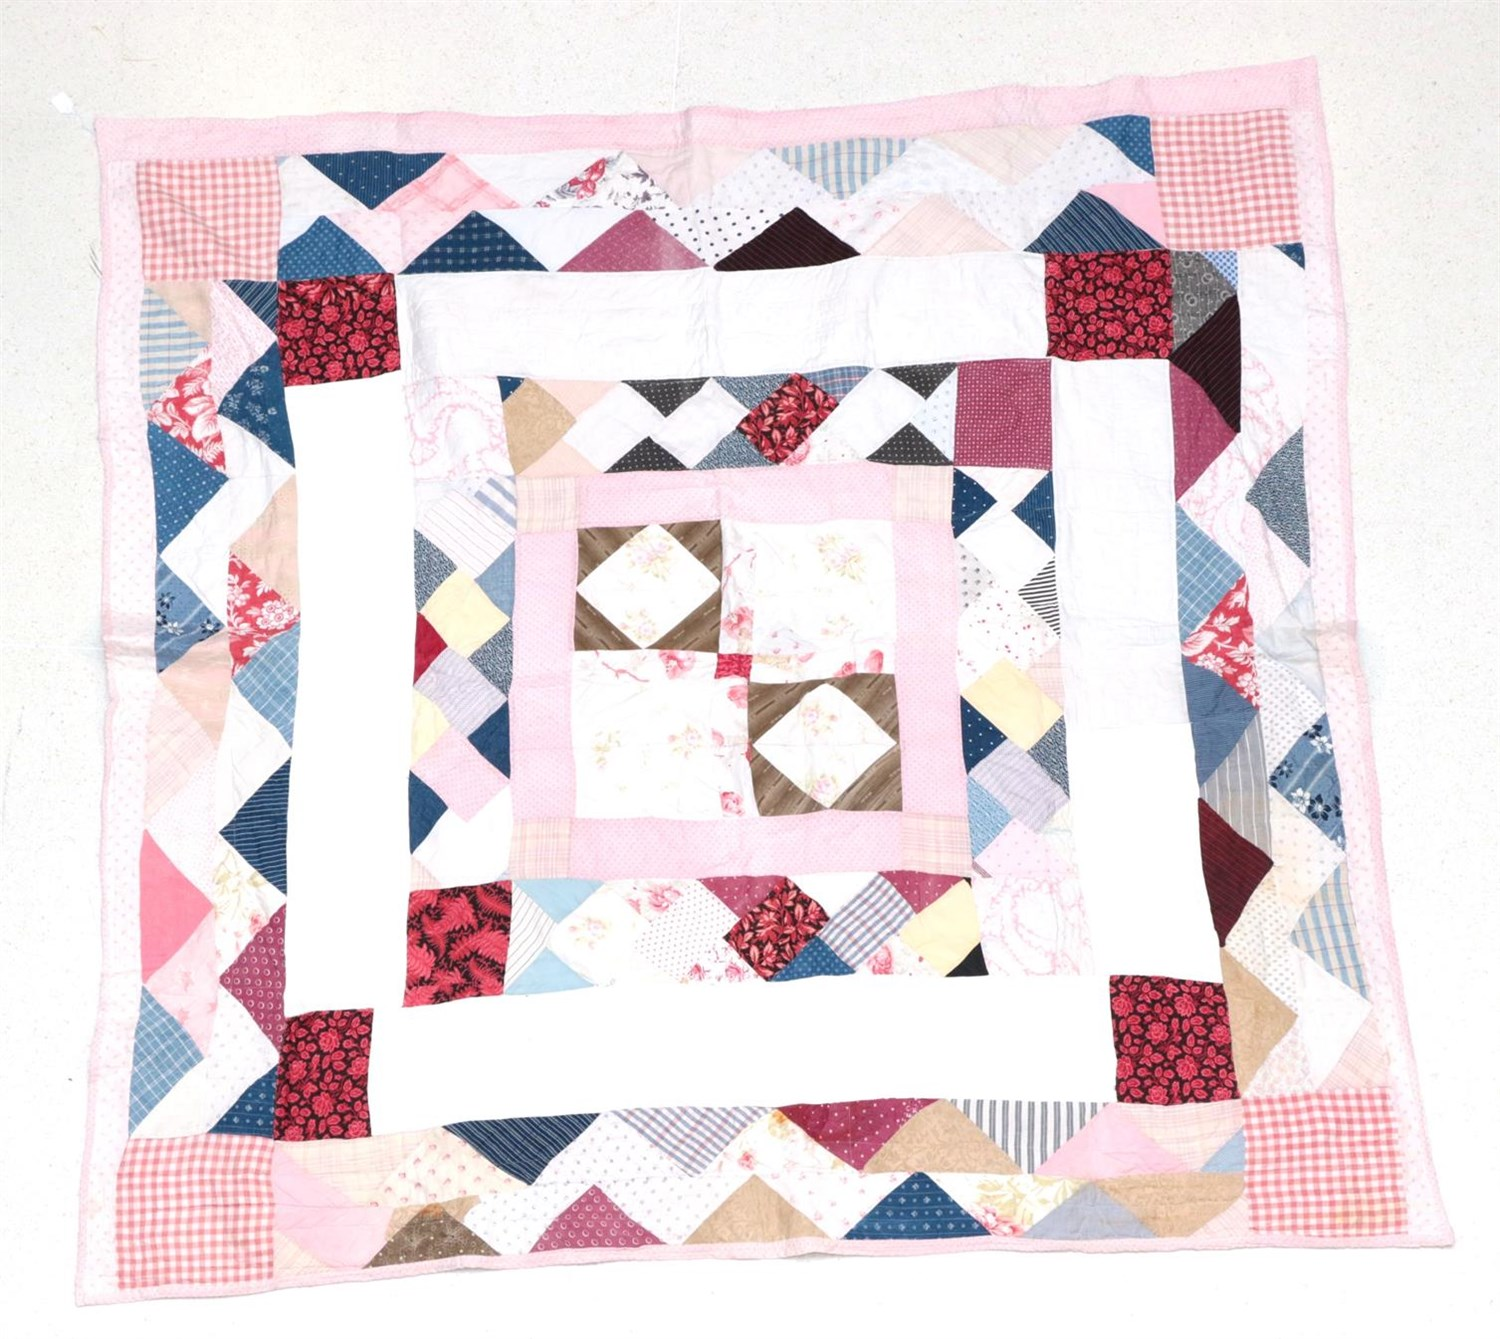 Lot 6035 - Late 19th Century North Country Thrift Quilt, designed in a mosaic pattern with central square,...